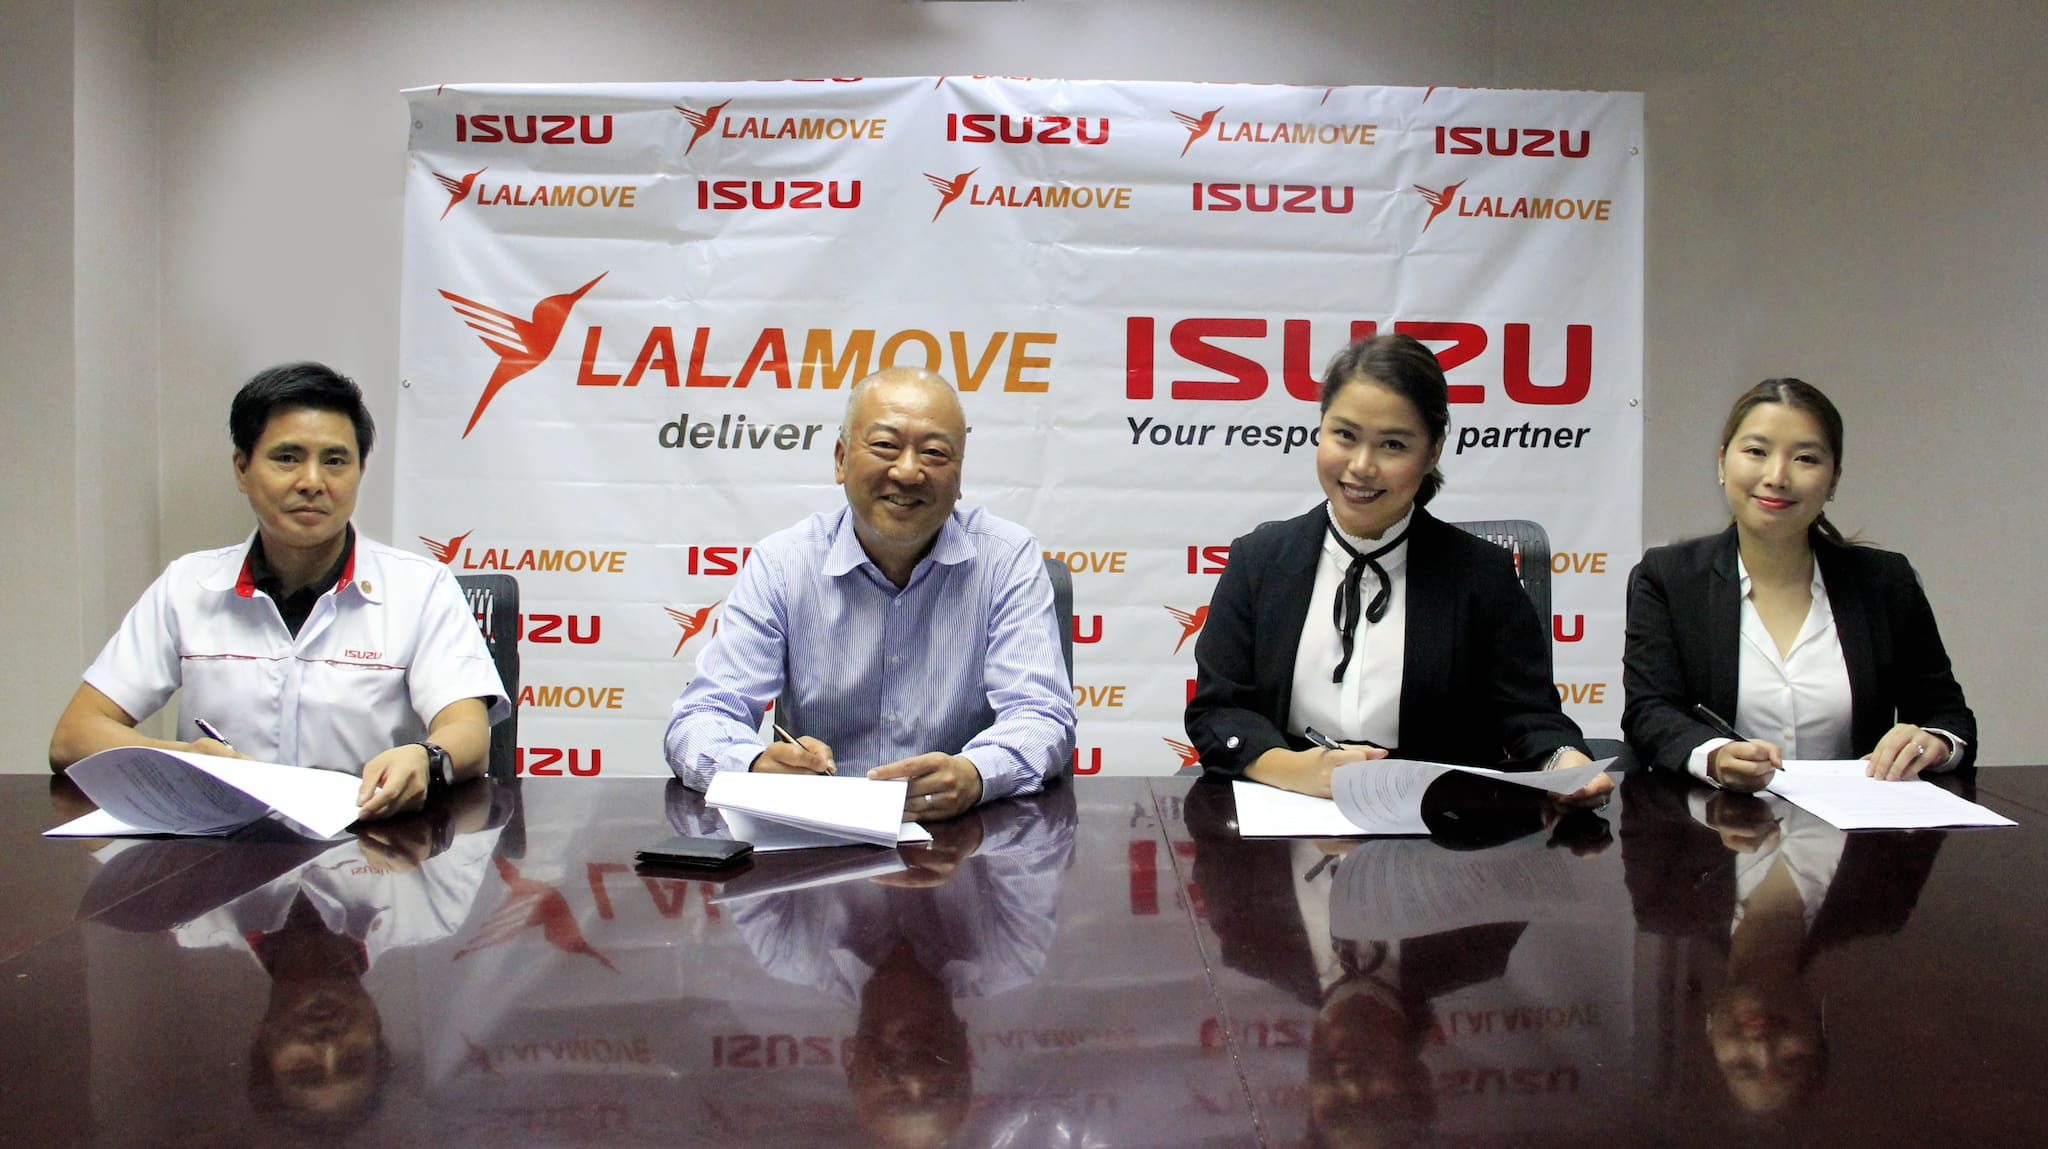 Lalamove Partners with Isuzu to Supply 4-Wheeled Vehicles that are 'Built to Deliver'